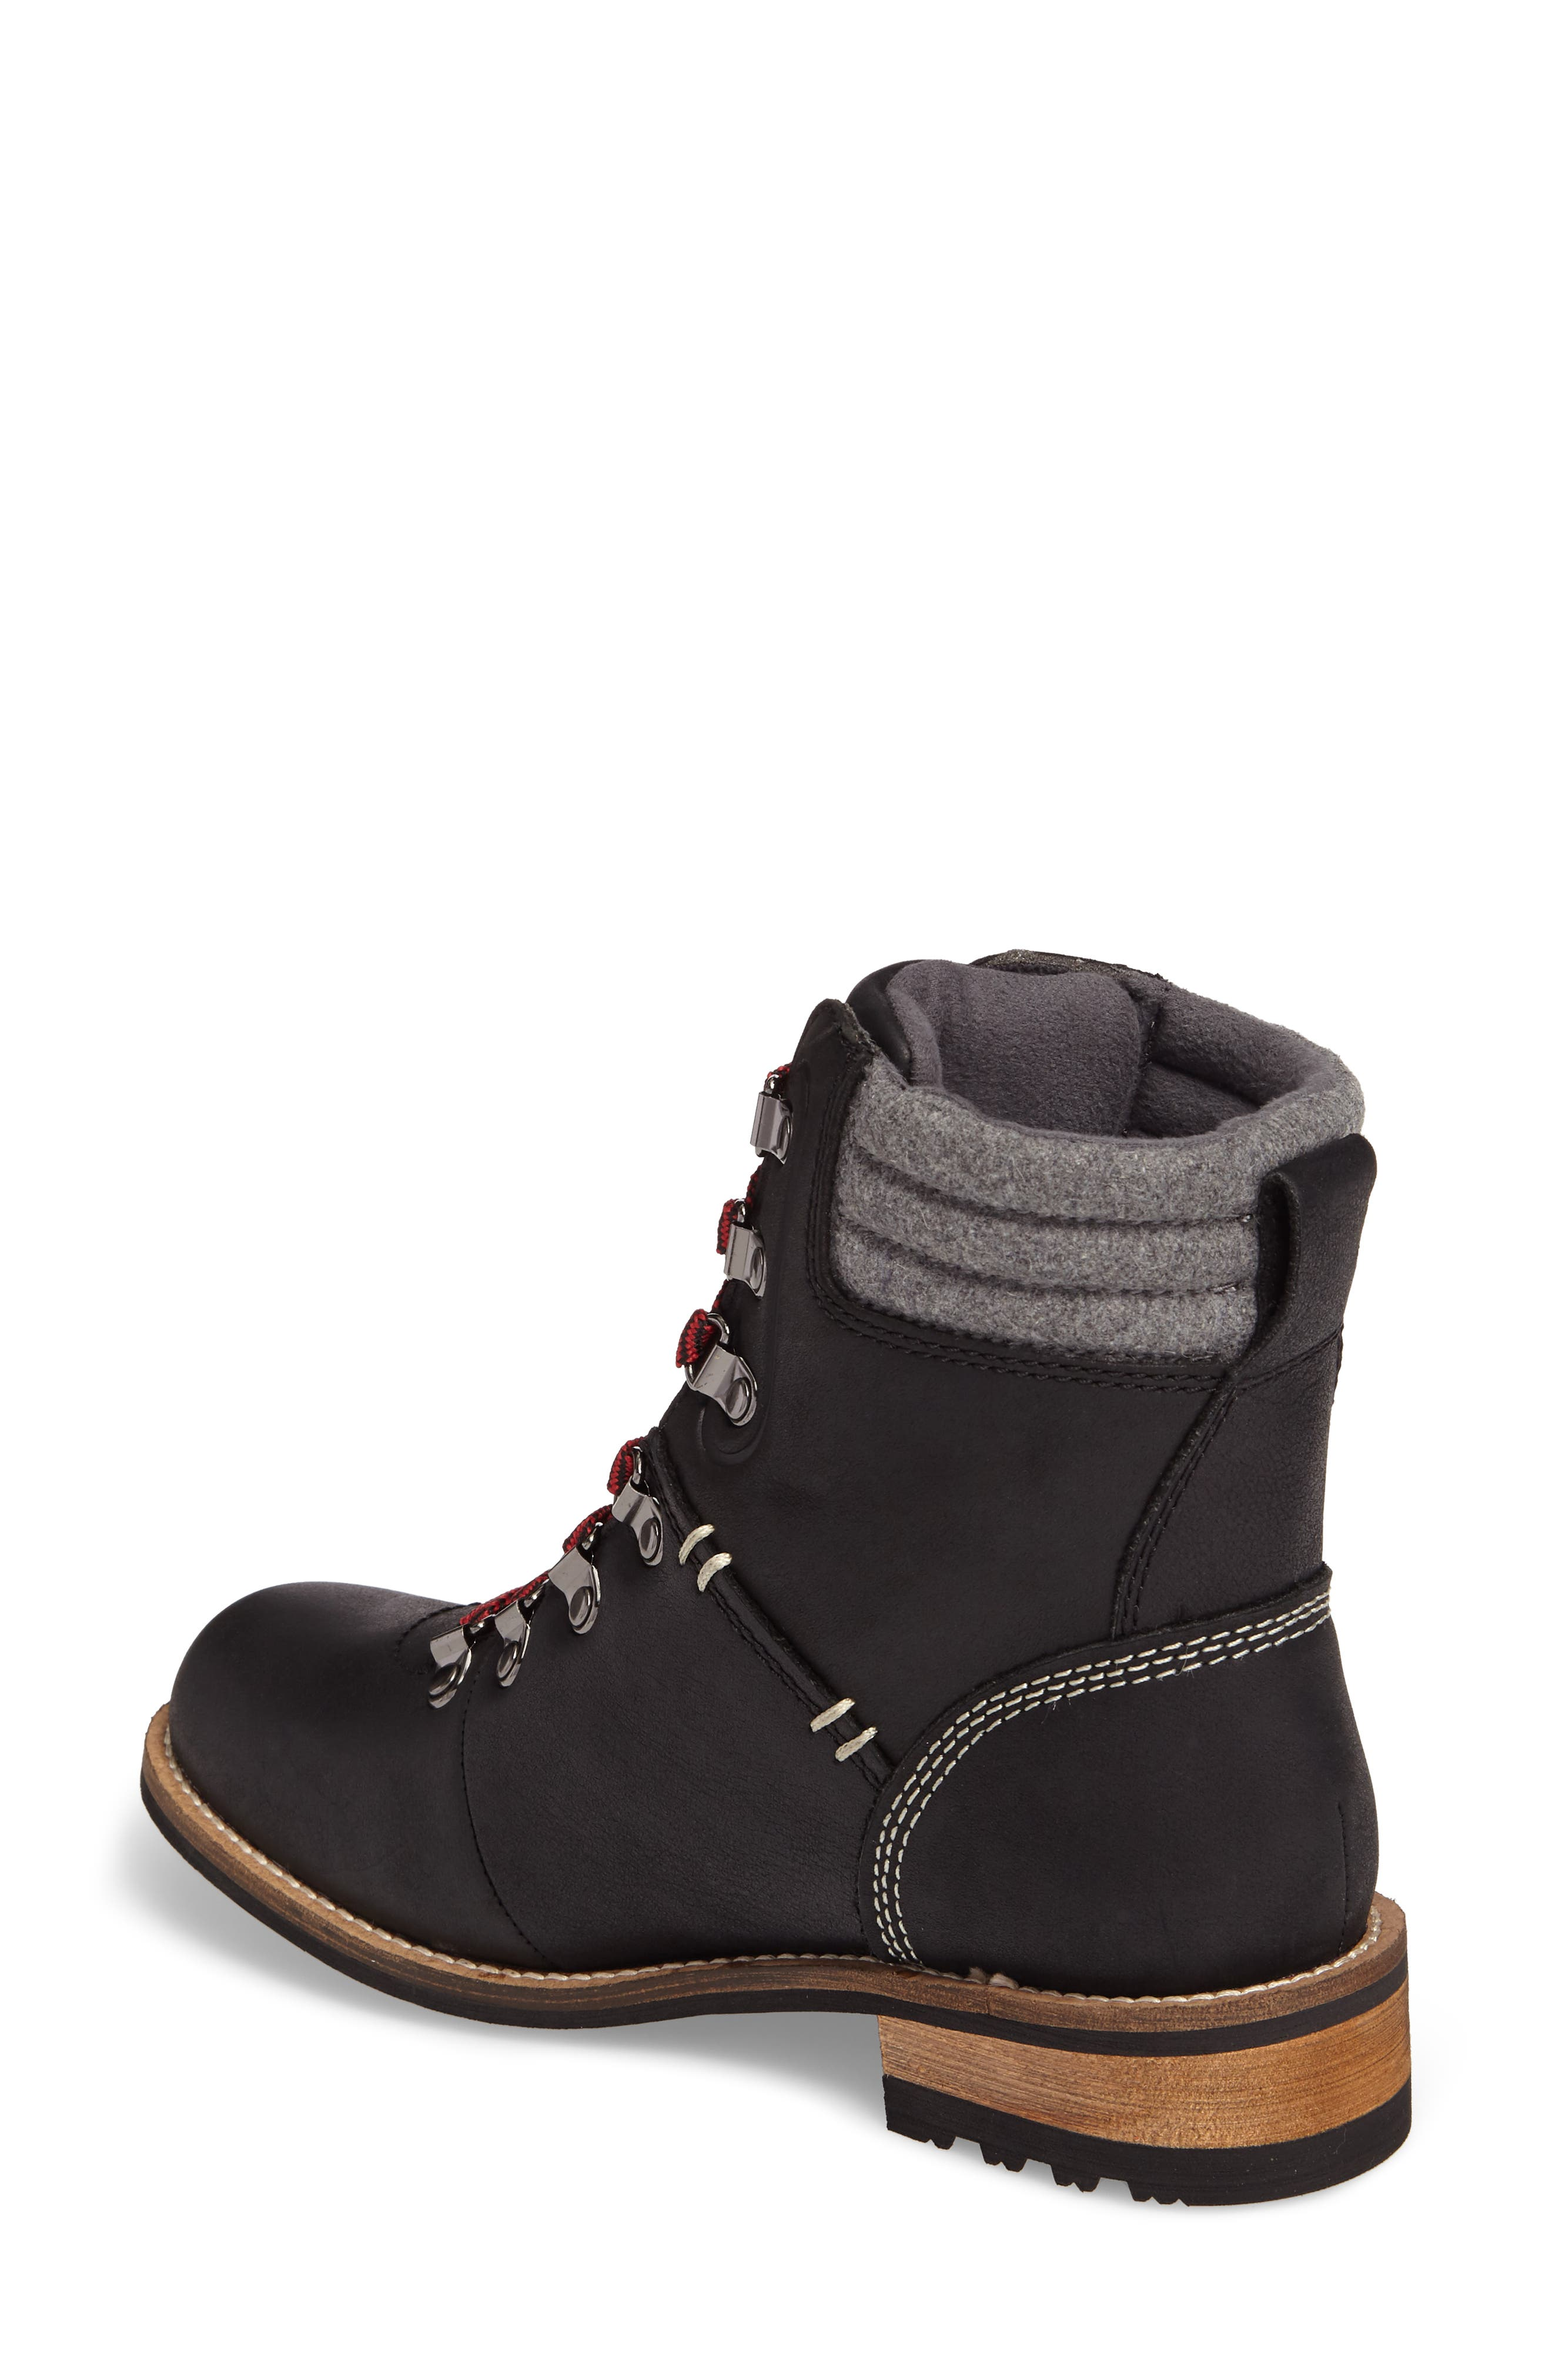 Surrey II Waterproof Boot,                             Alternate thumbnail 2, color,                             BLACK LEATHER